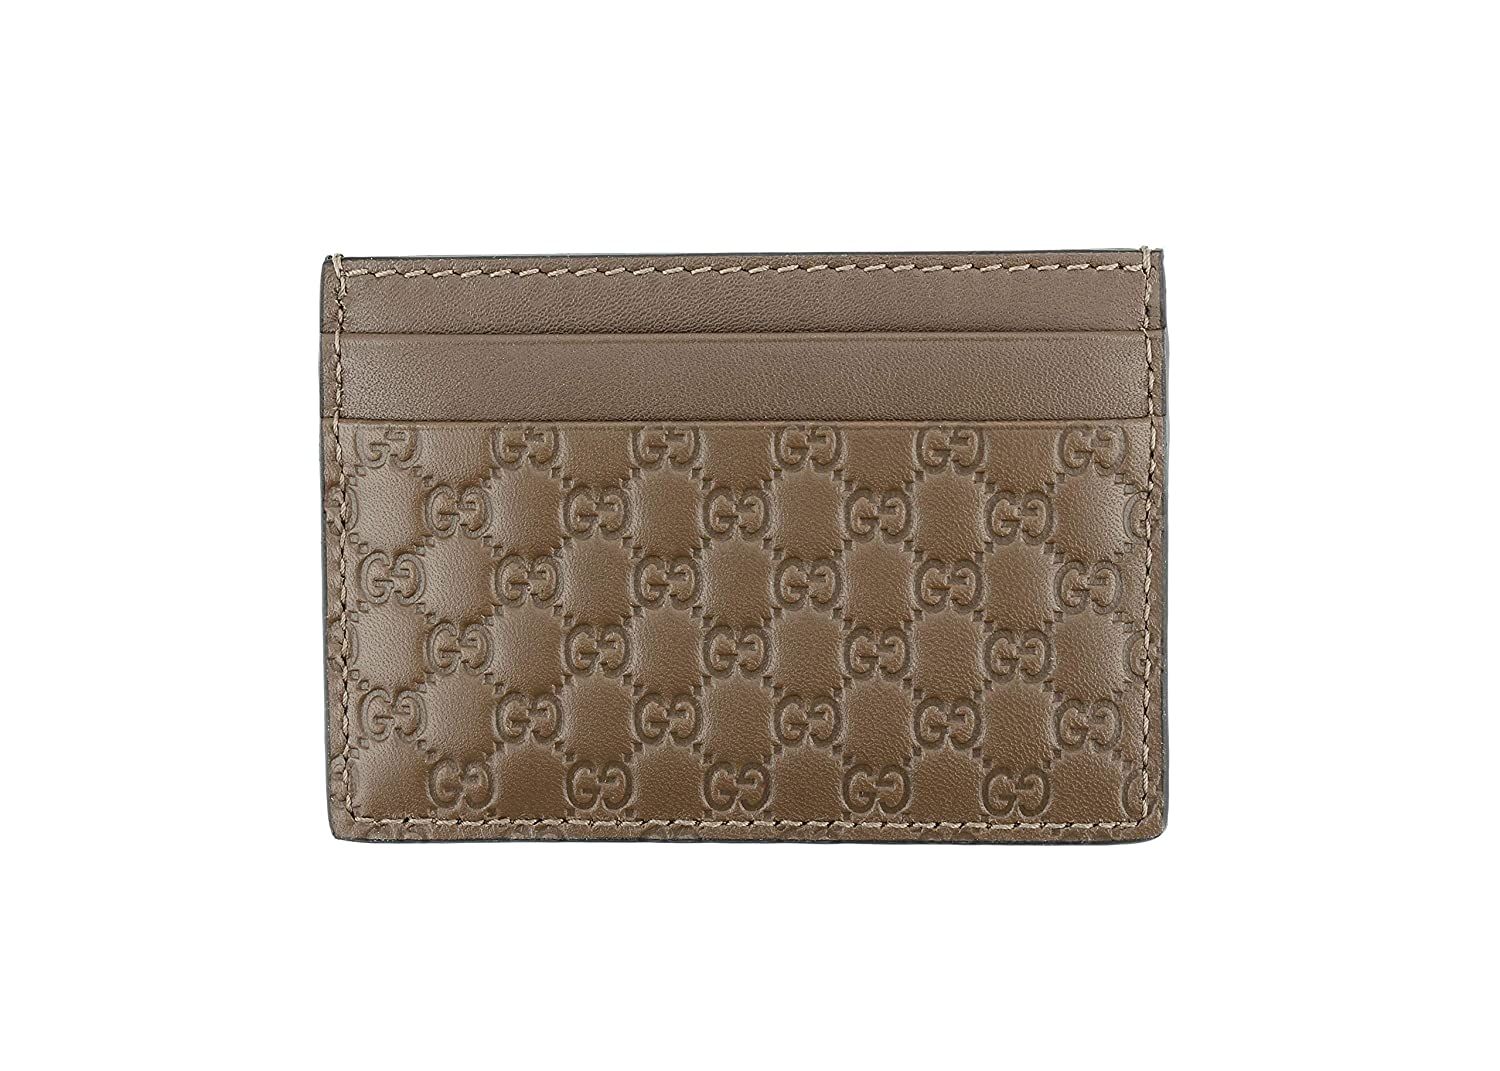 8a7694ee506a Gucci Microguccissima Signature Leather Card Case Wallet, Mid-Brown 262837  at Amazon Men's Clothing store: